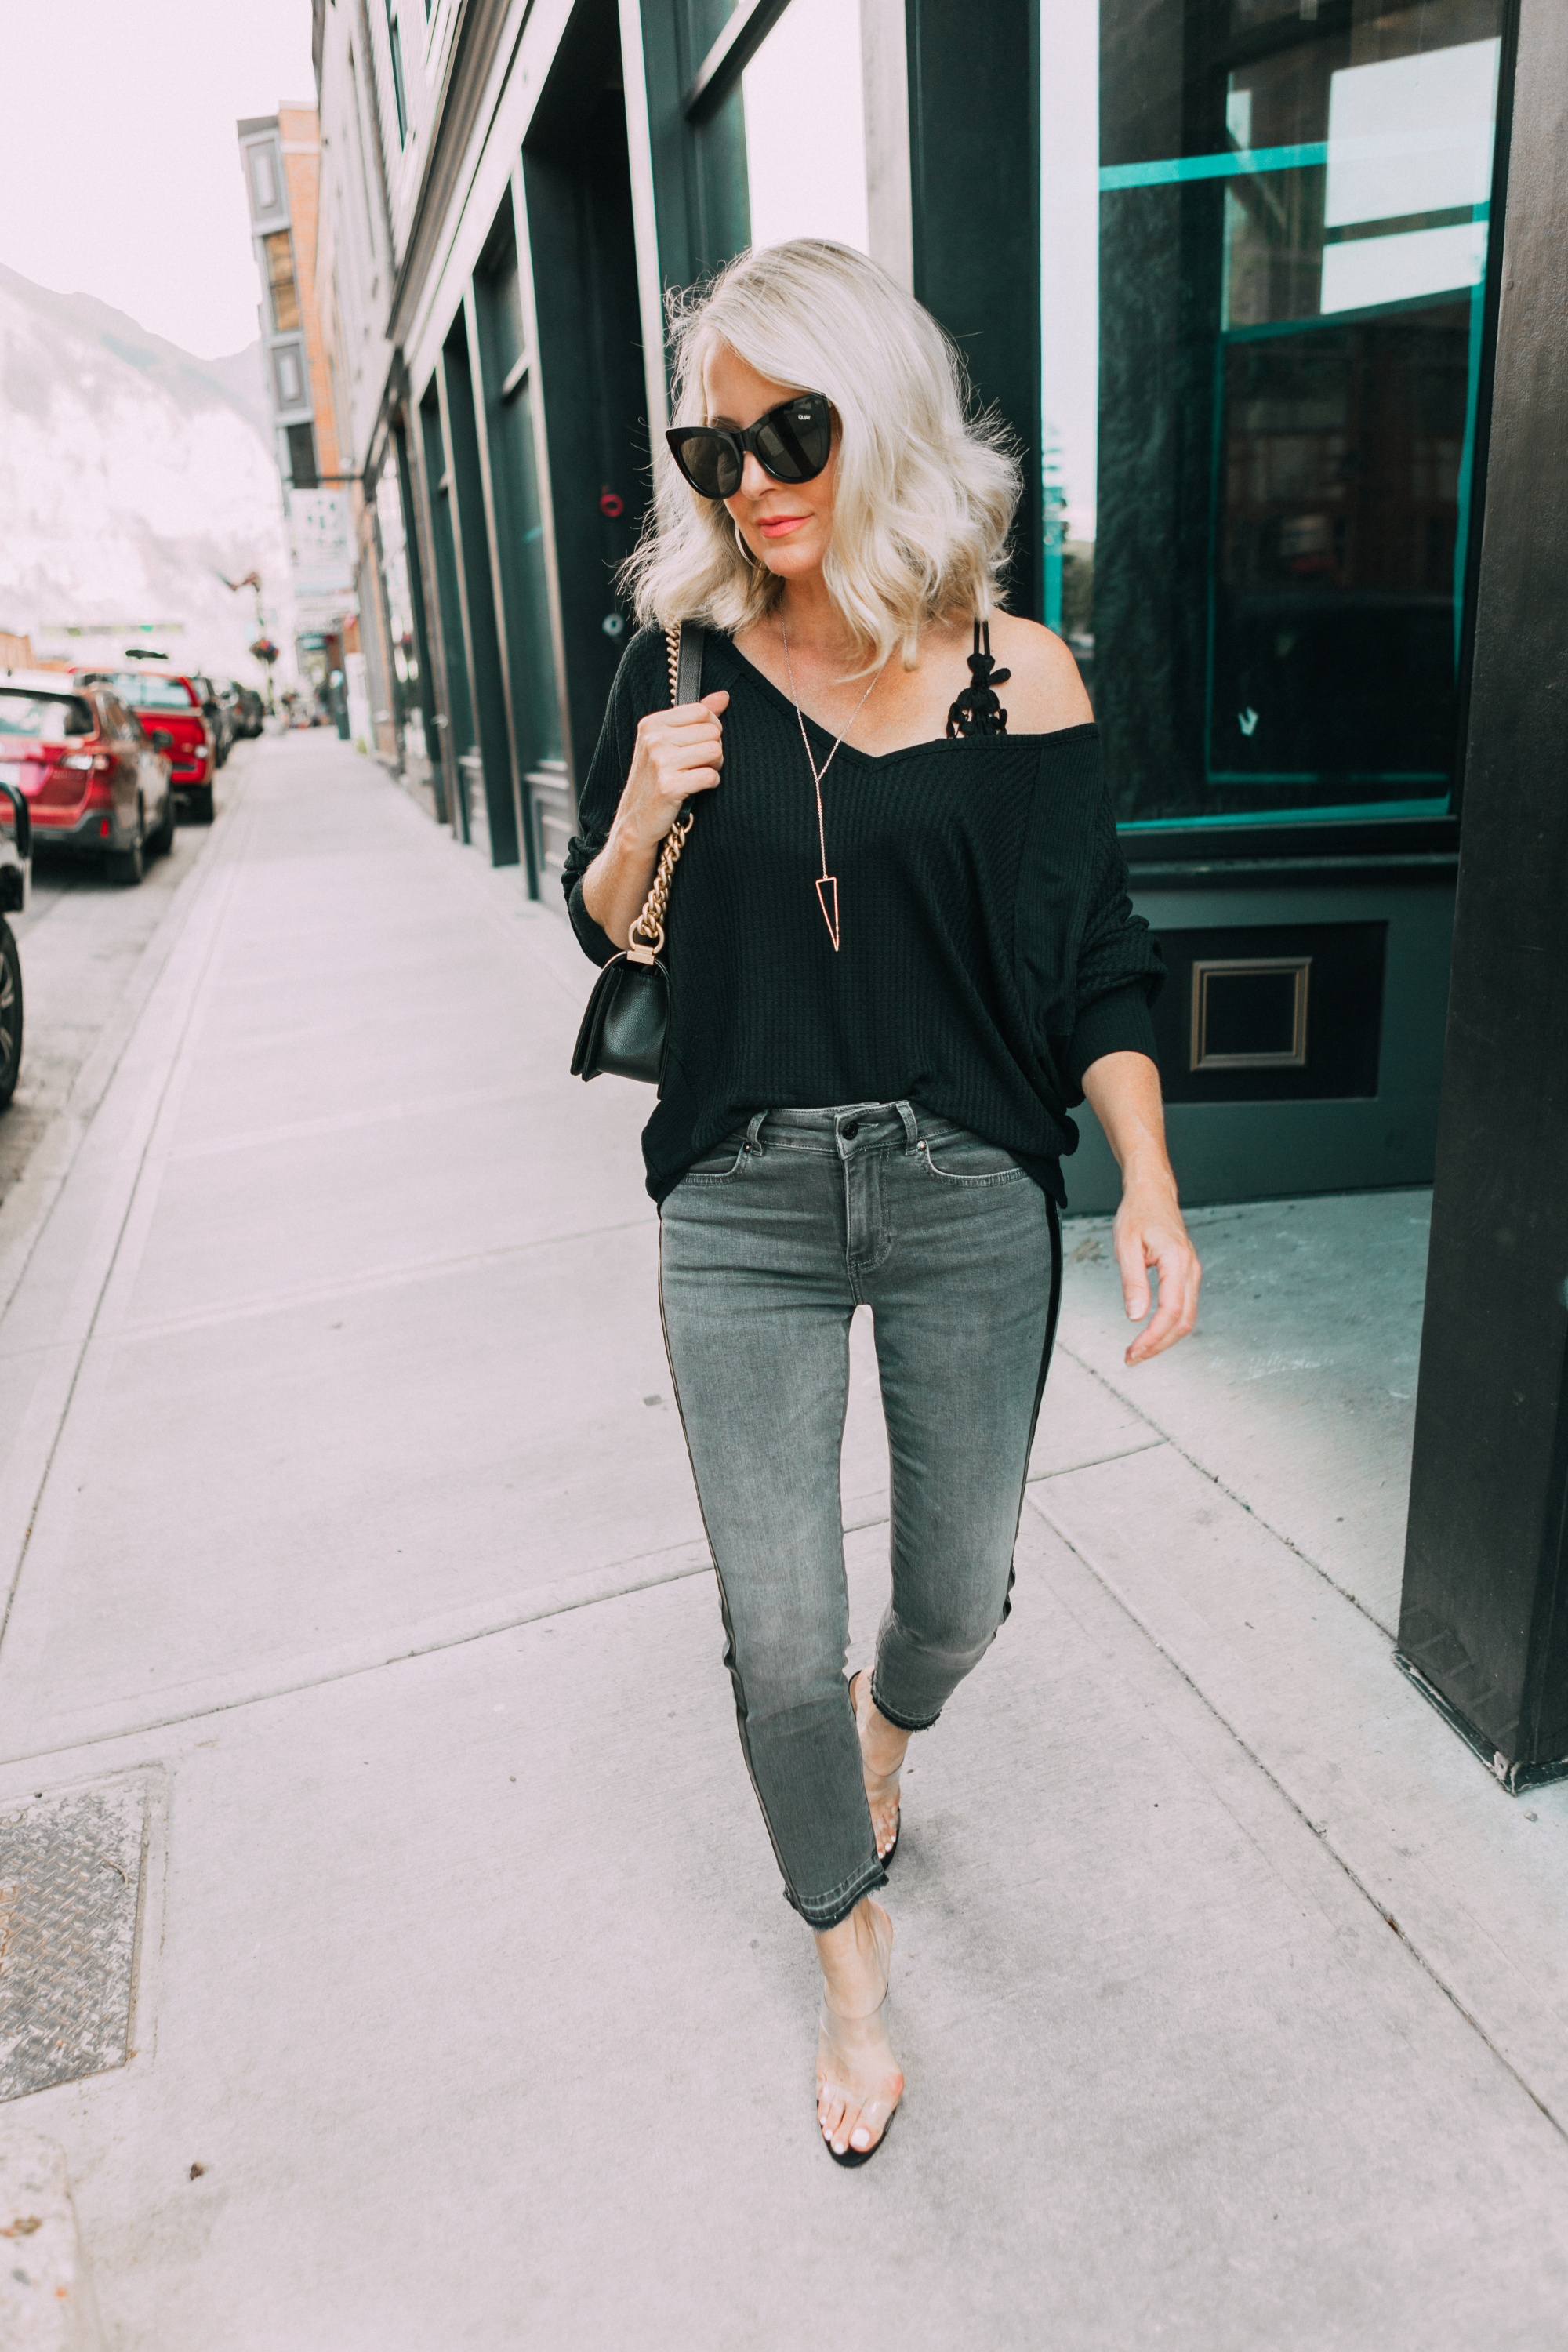 Women's fashion blogger, Erin Busbee, shows us how to wear black bralette with her 13 style hacks.